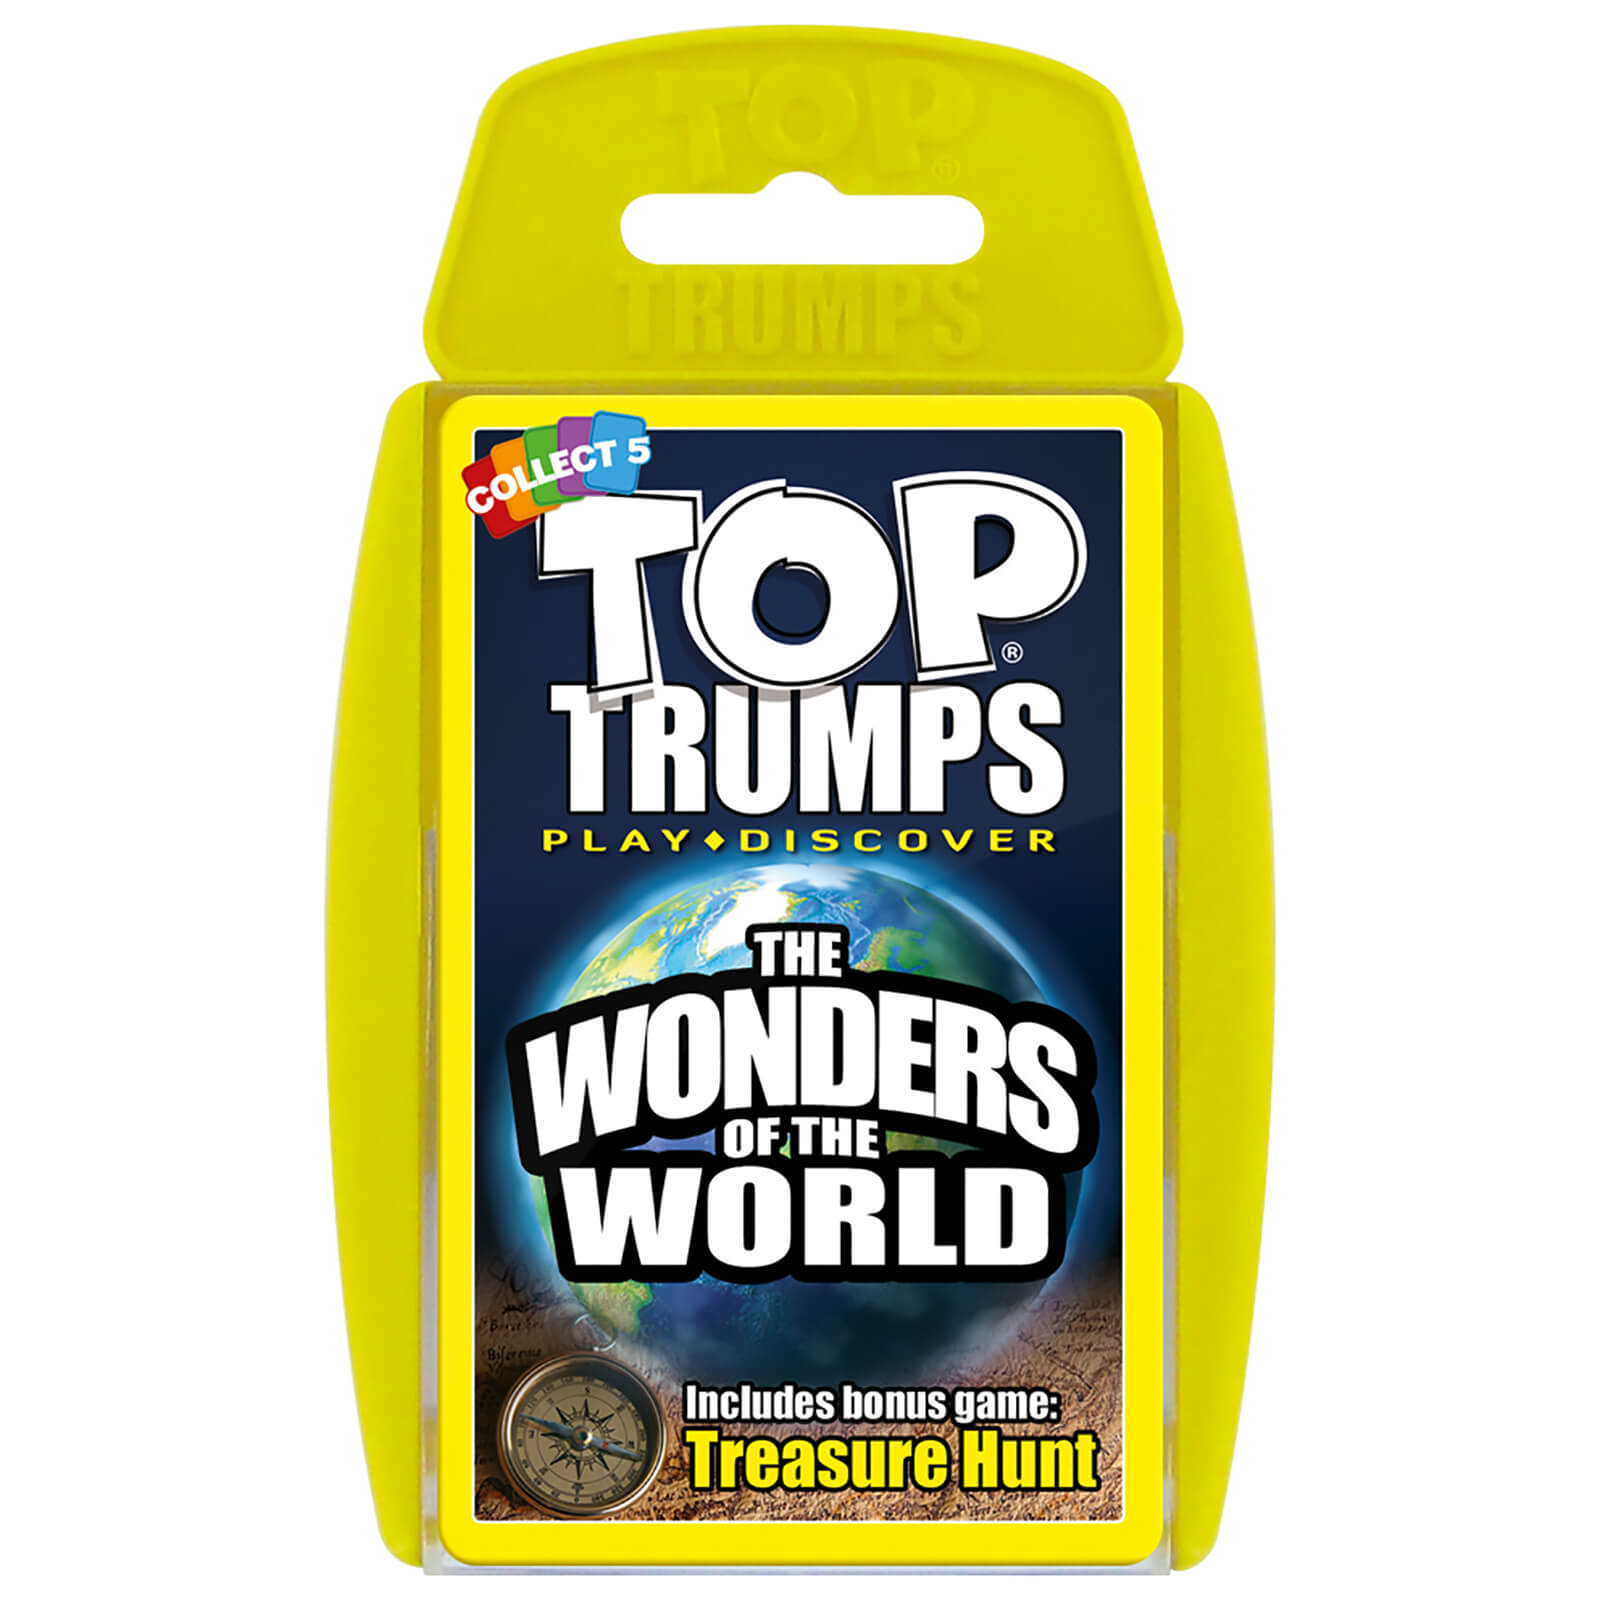 Image of Top Trumps Card Game - Wonders of the World Edition